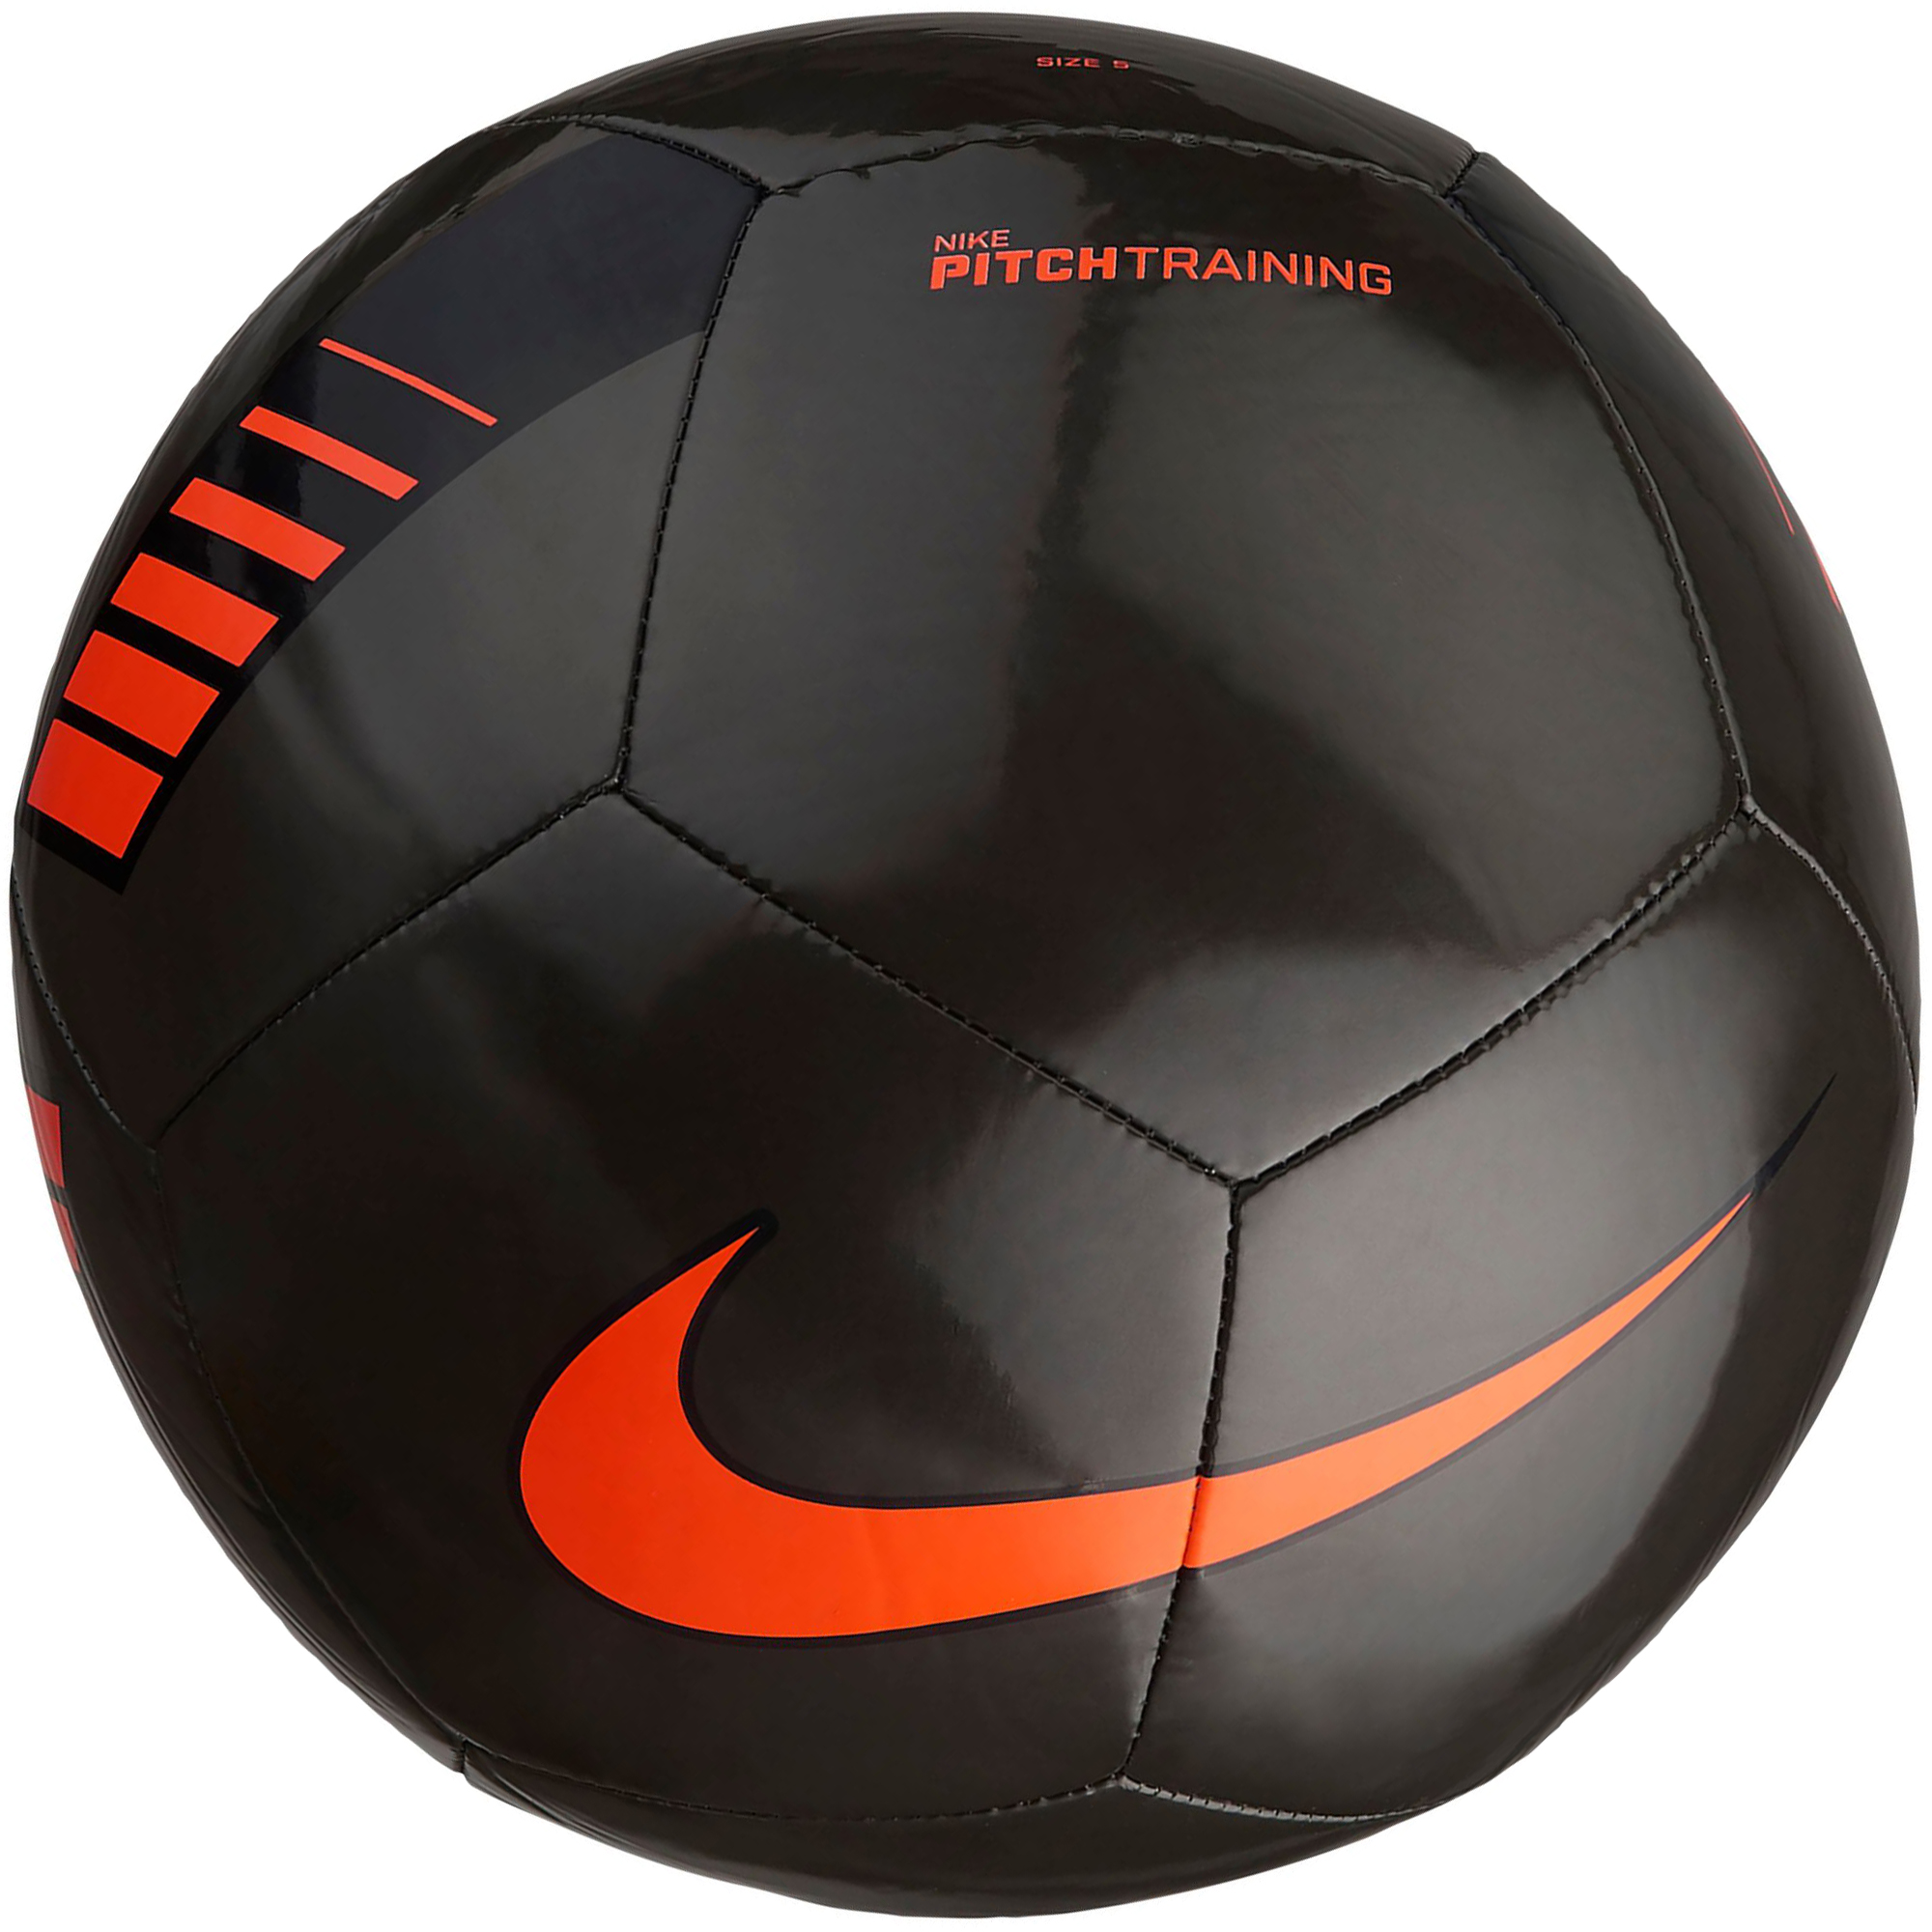 Pics Of Soccer Balls with Nike Pitch Training Ball - HD ...